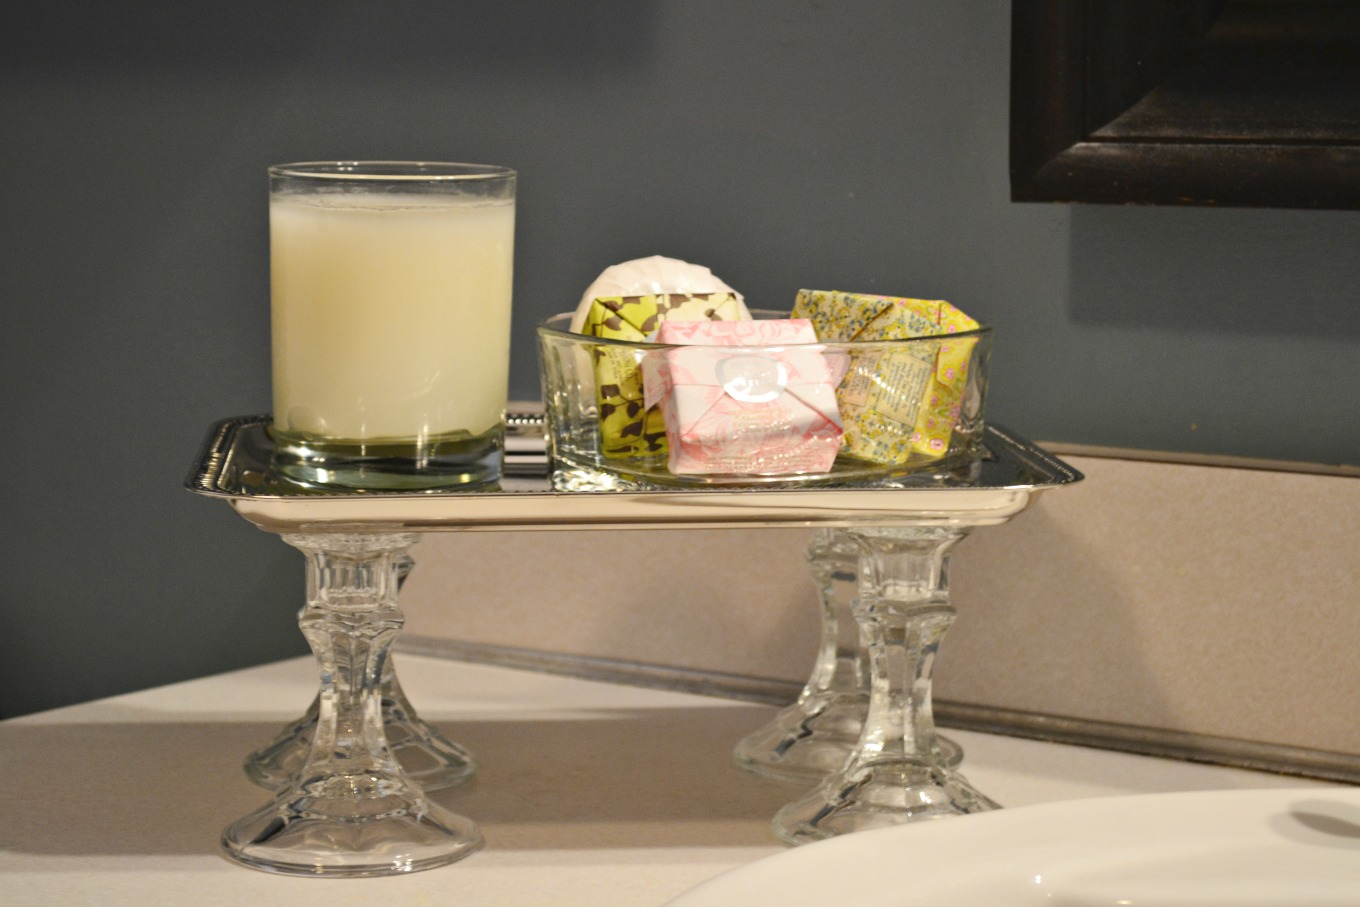 Make a dollar store bathroom tray using a dollar store tray and candlesticks - thediybungalow.com